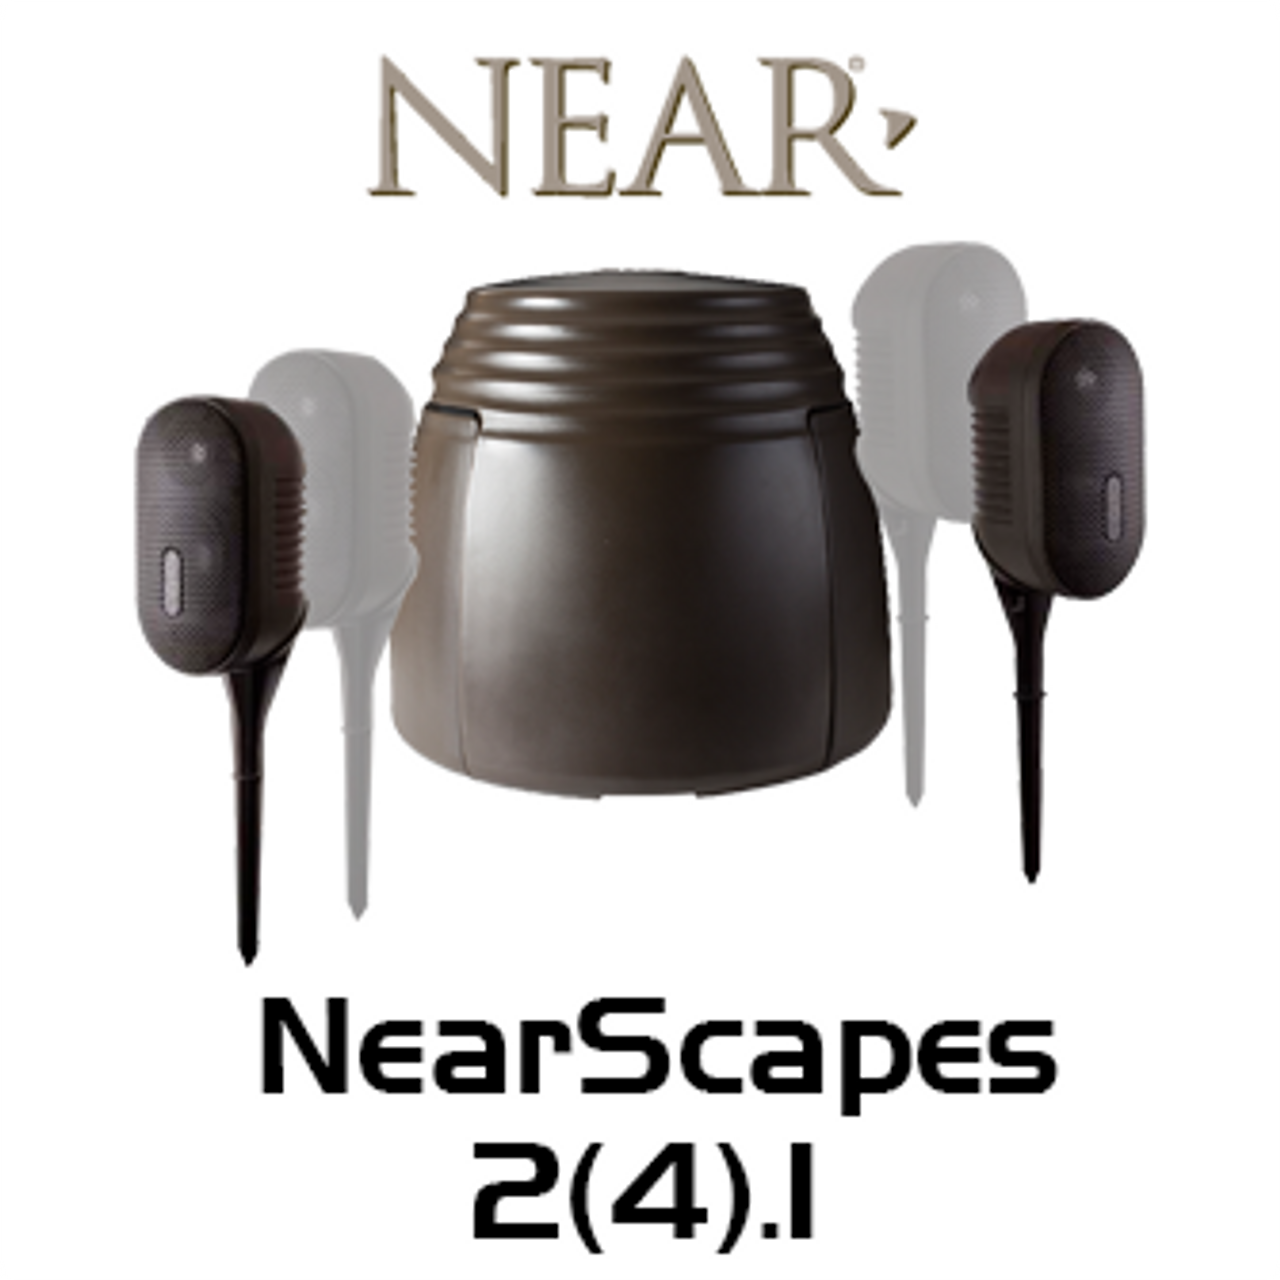 Near NearScapes 2.1 / 4.1 High Performance Outdoor Loudspeaker System